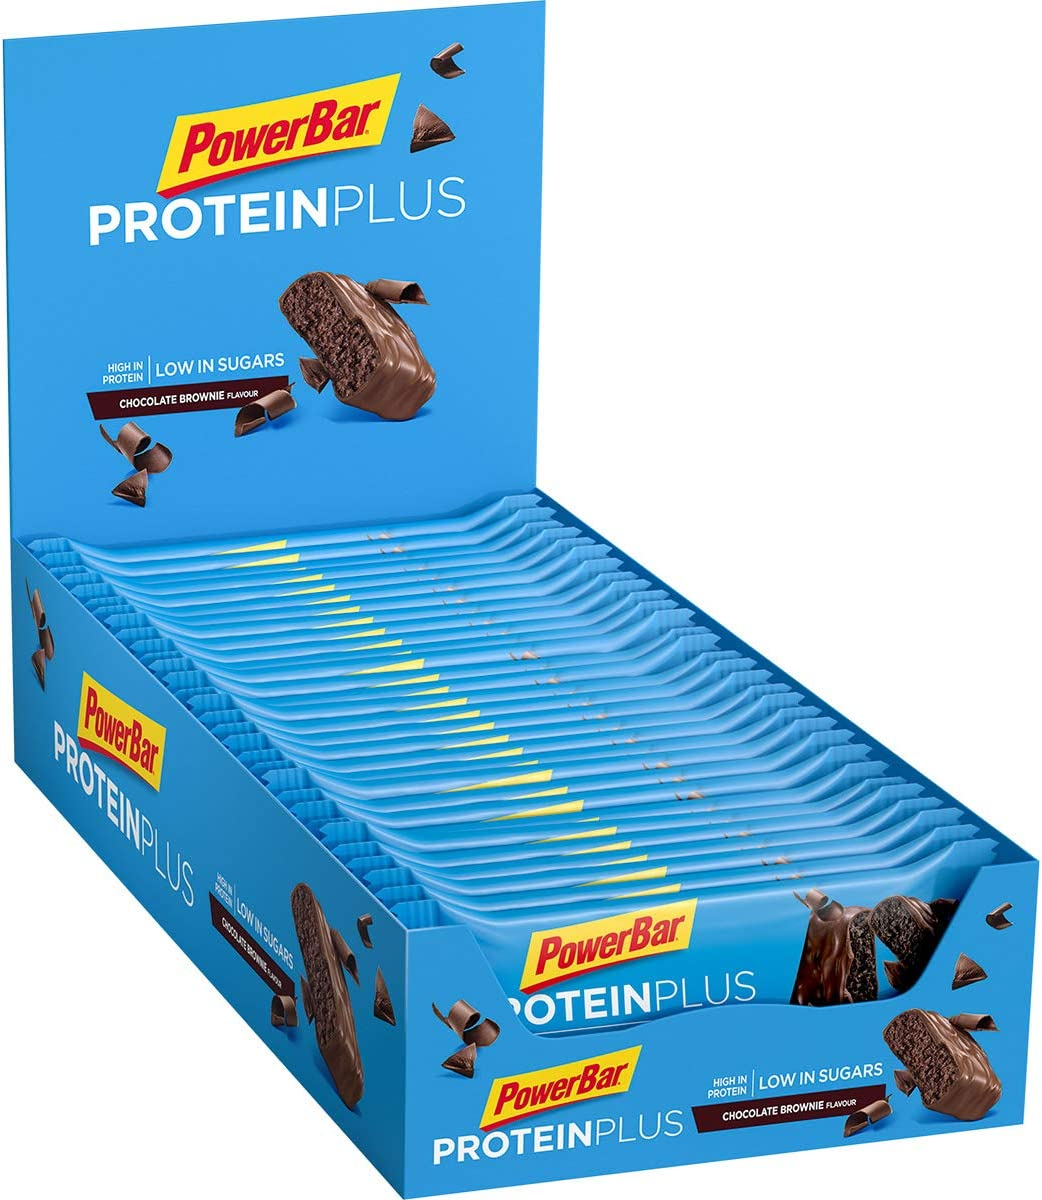 Powerbar Protein Plus Low Sugar Chocolate Brownie - Barritas Proteinas con Bajo Nivel de Azucar - 30 Barras 1005 g